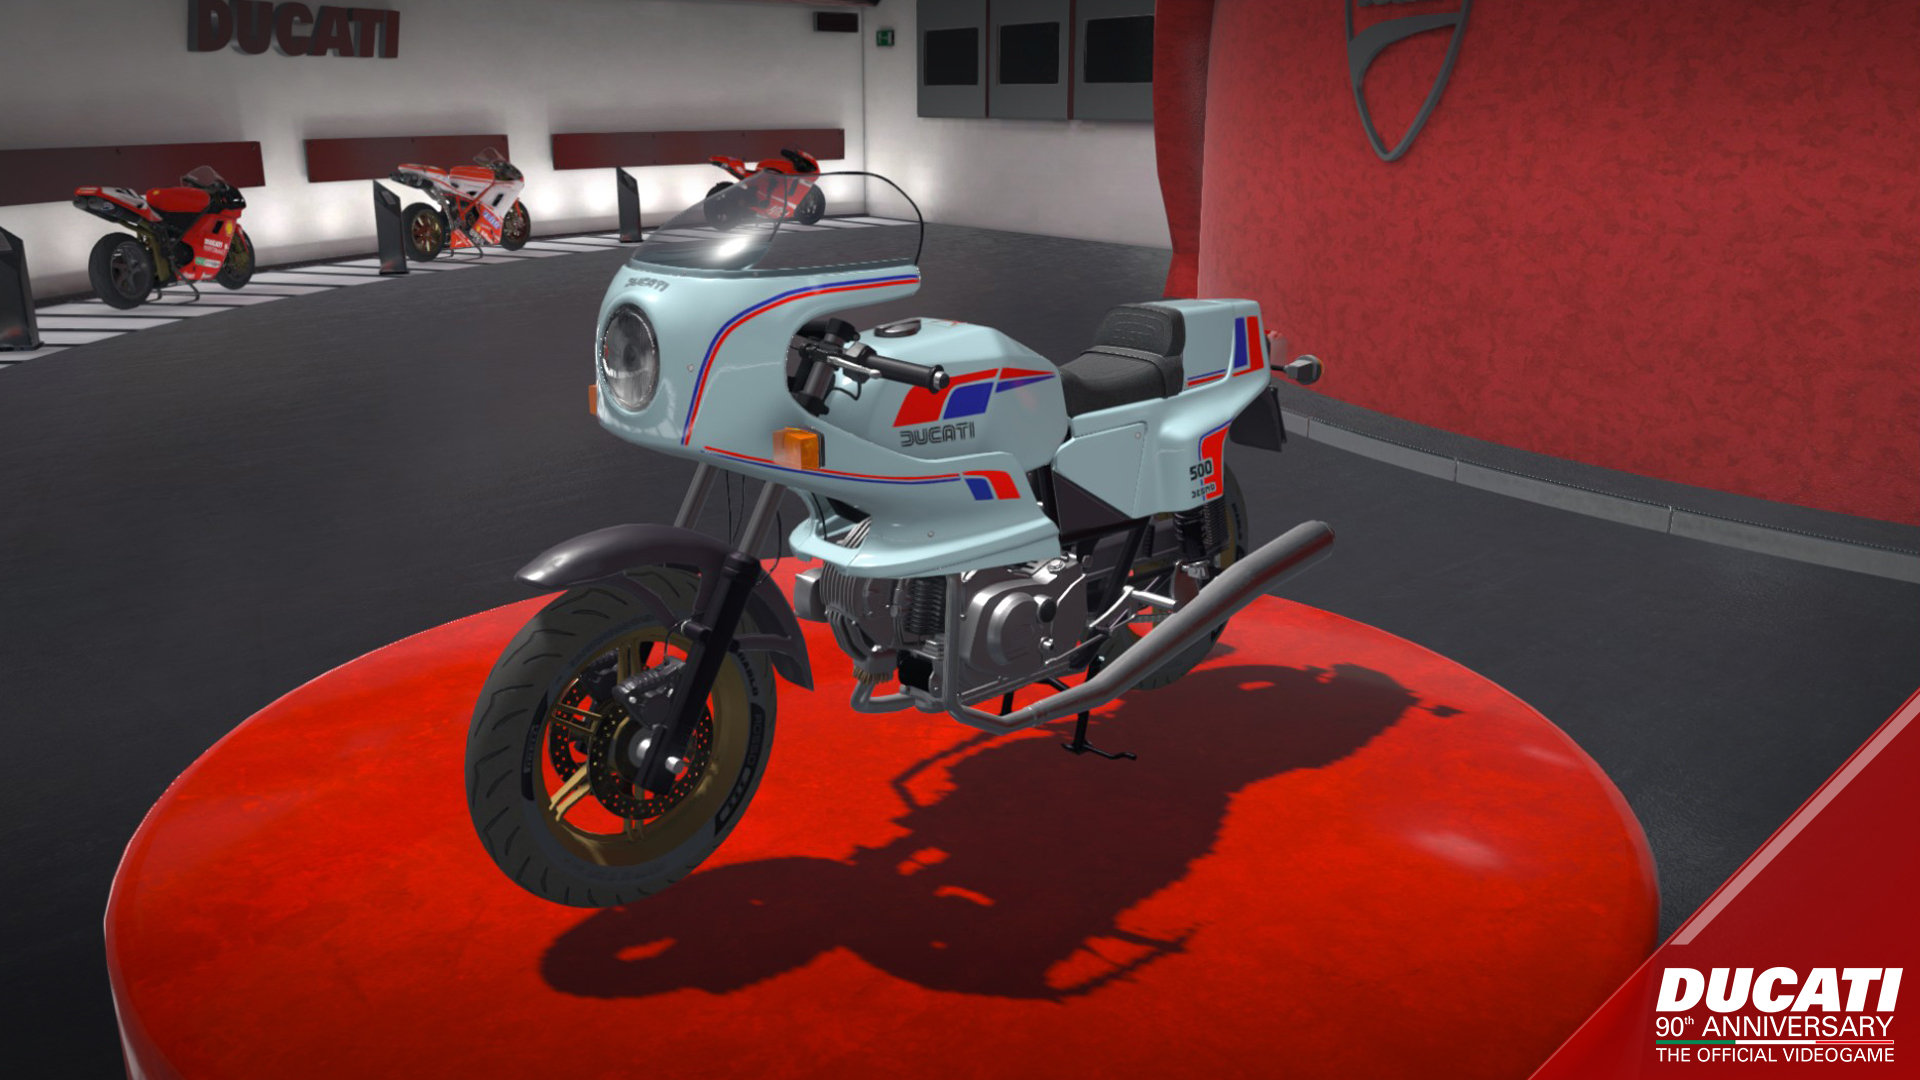 ducati - 90th anniversary game | ps4 - playstation